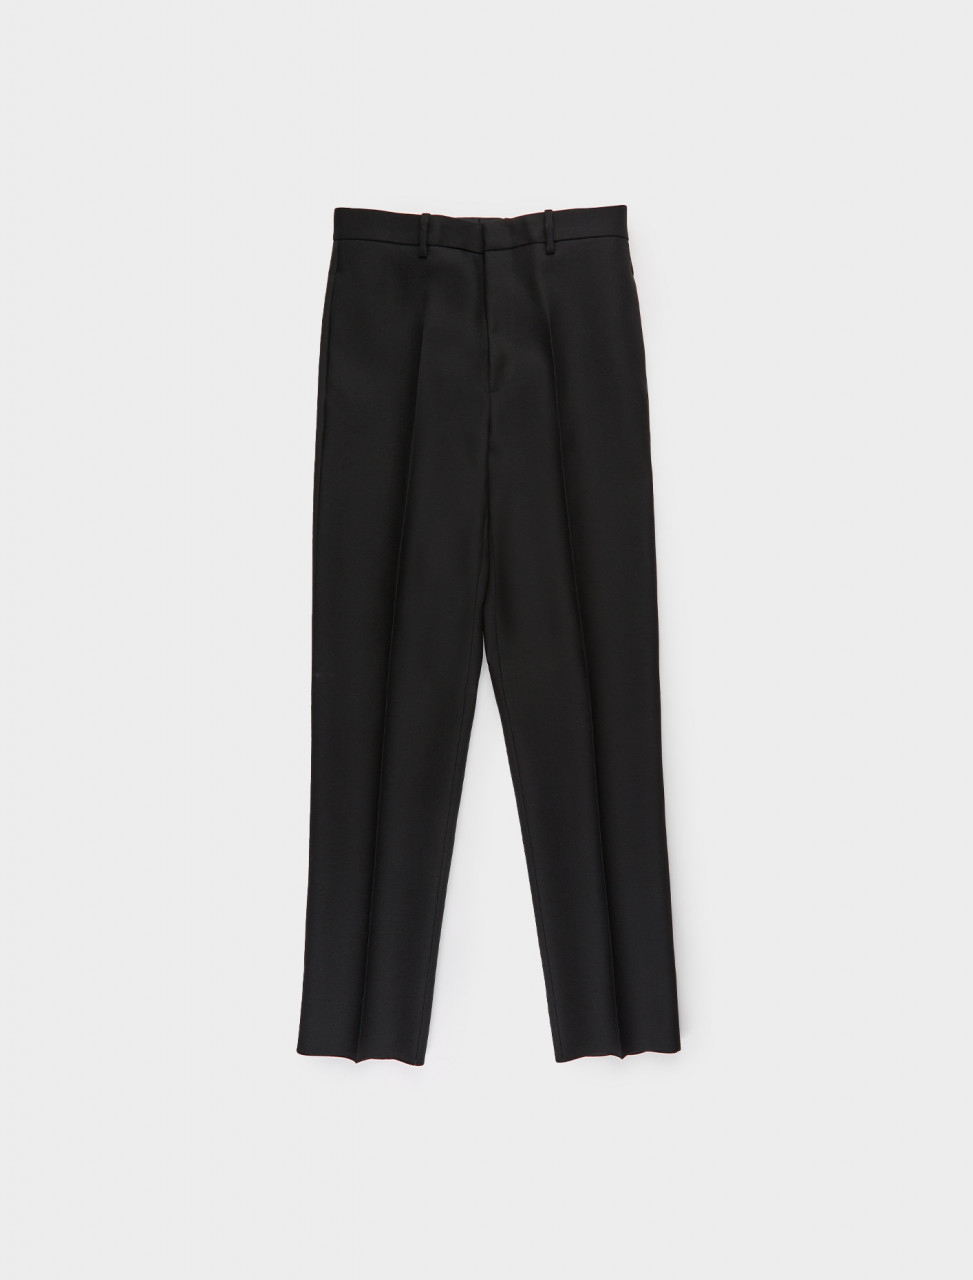 130-JSMR310401-MR201000-001 JIL SANDER Regular Fit Trouser in Black